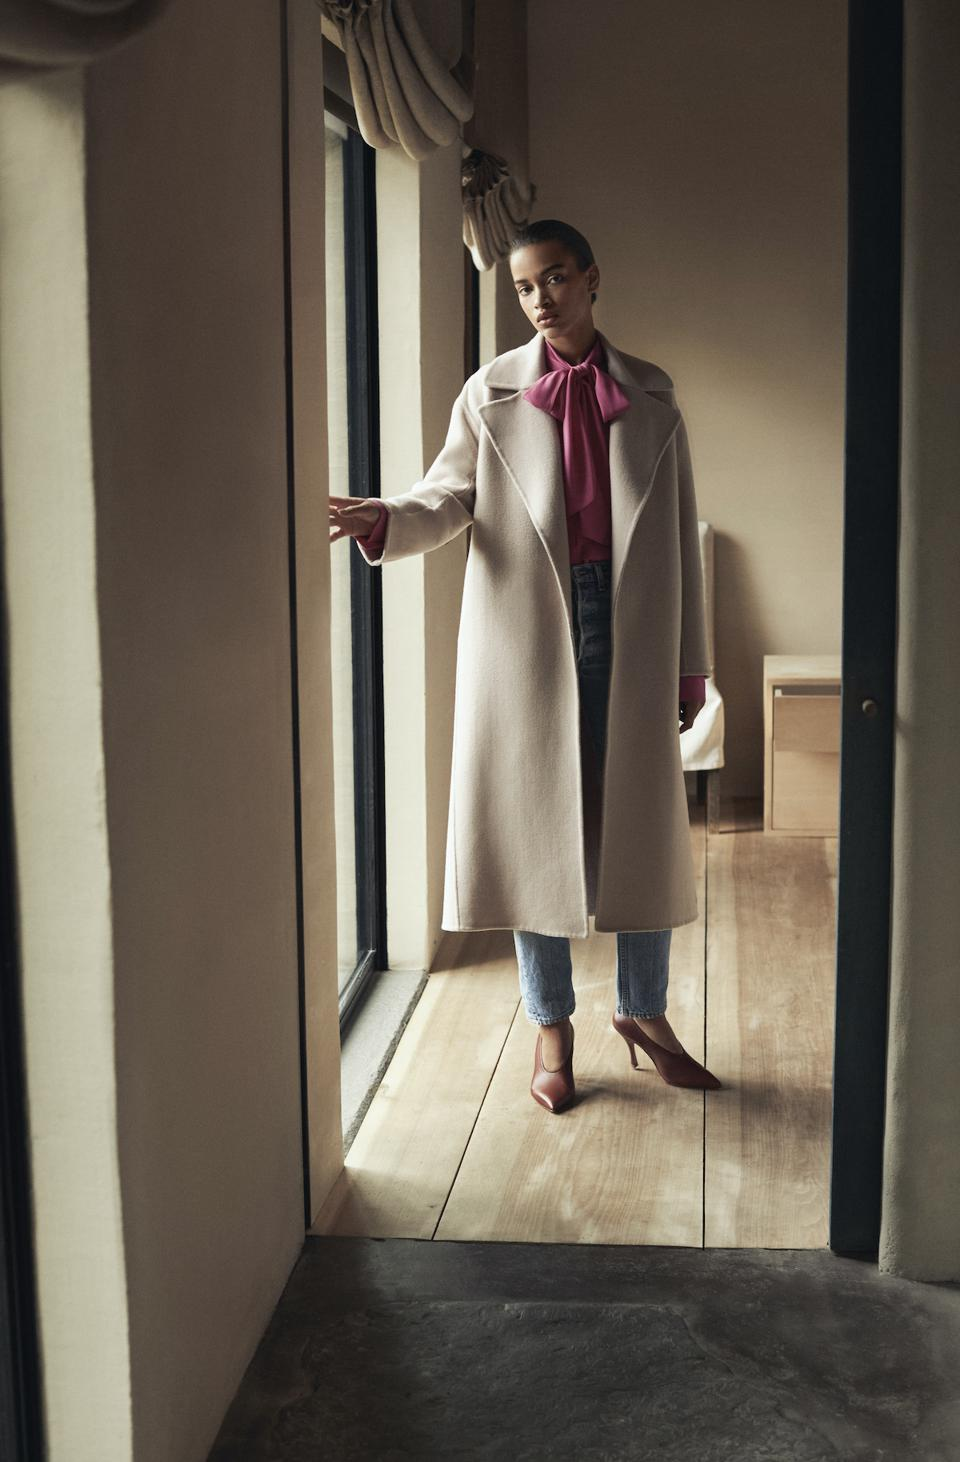 The Another Tomorrow Draped Overcoat is made from ethical merino wool sourced from a Responsible Wool Standard-certified family farm in Tasmania.